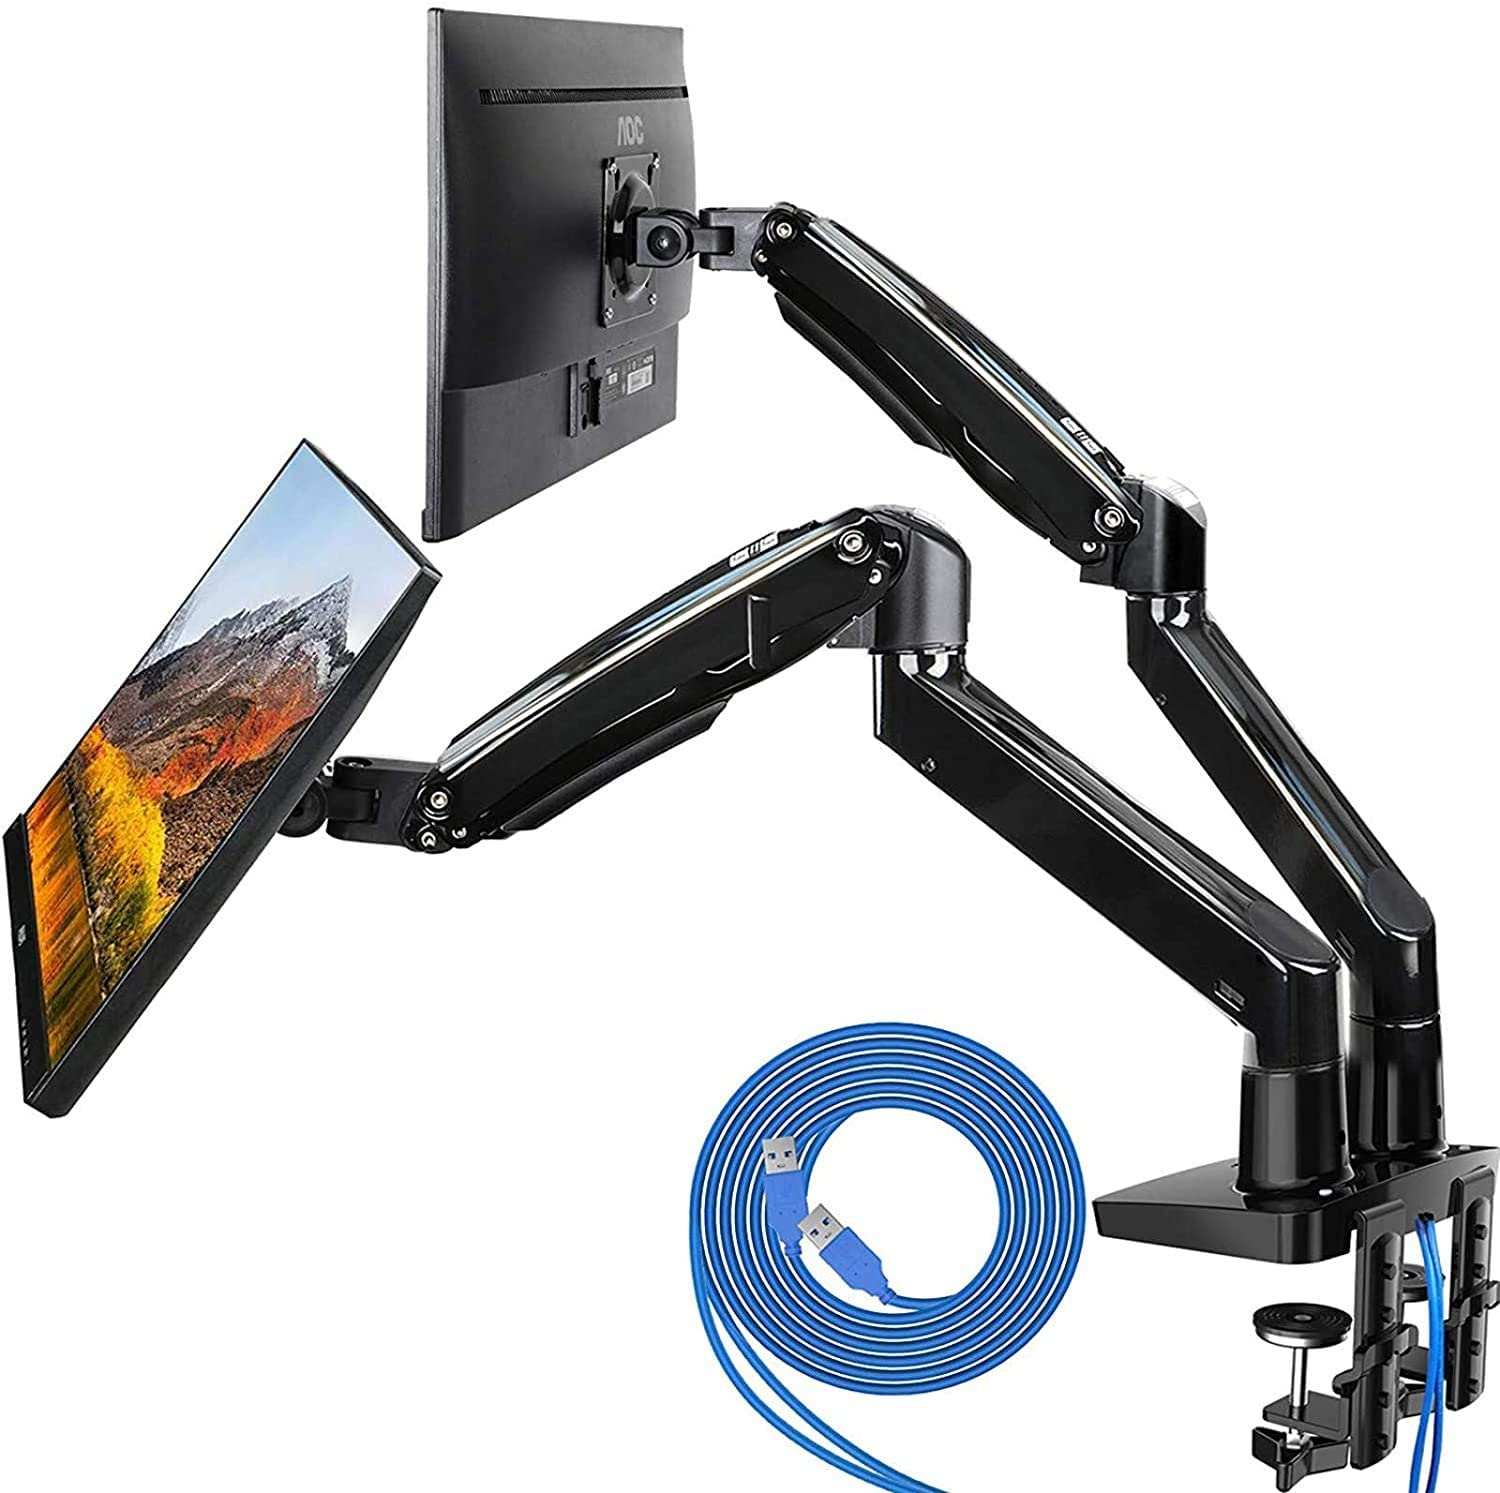 Review of HUANUO Dual Monitor Mount Stand - Long Double Arm Gas Spring Monitor Desk Mount for 2 Screens